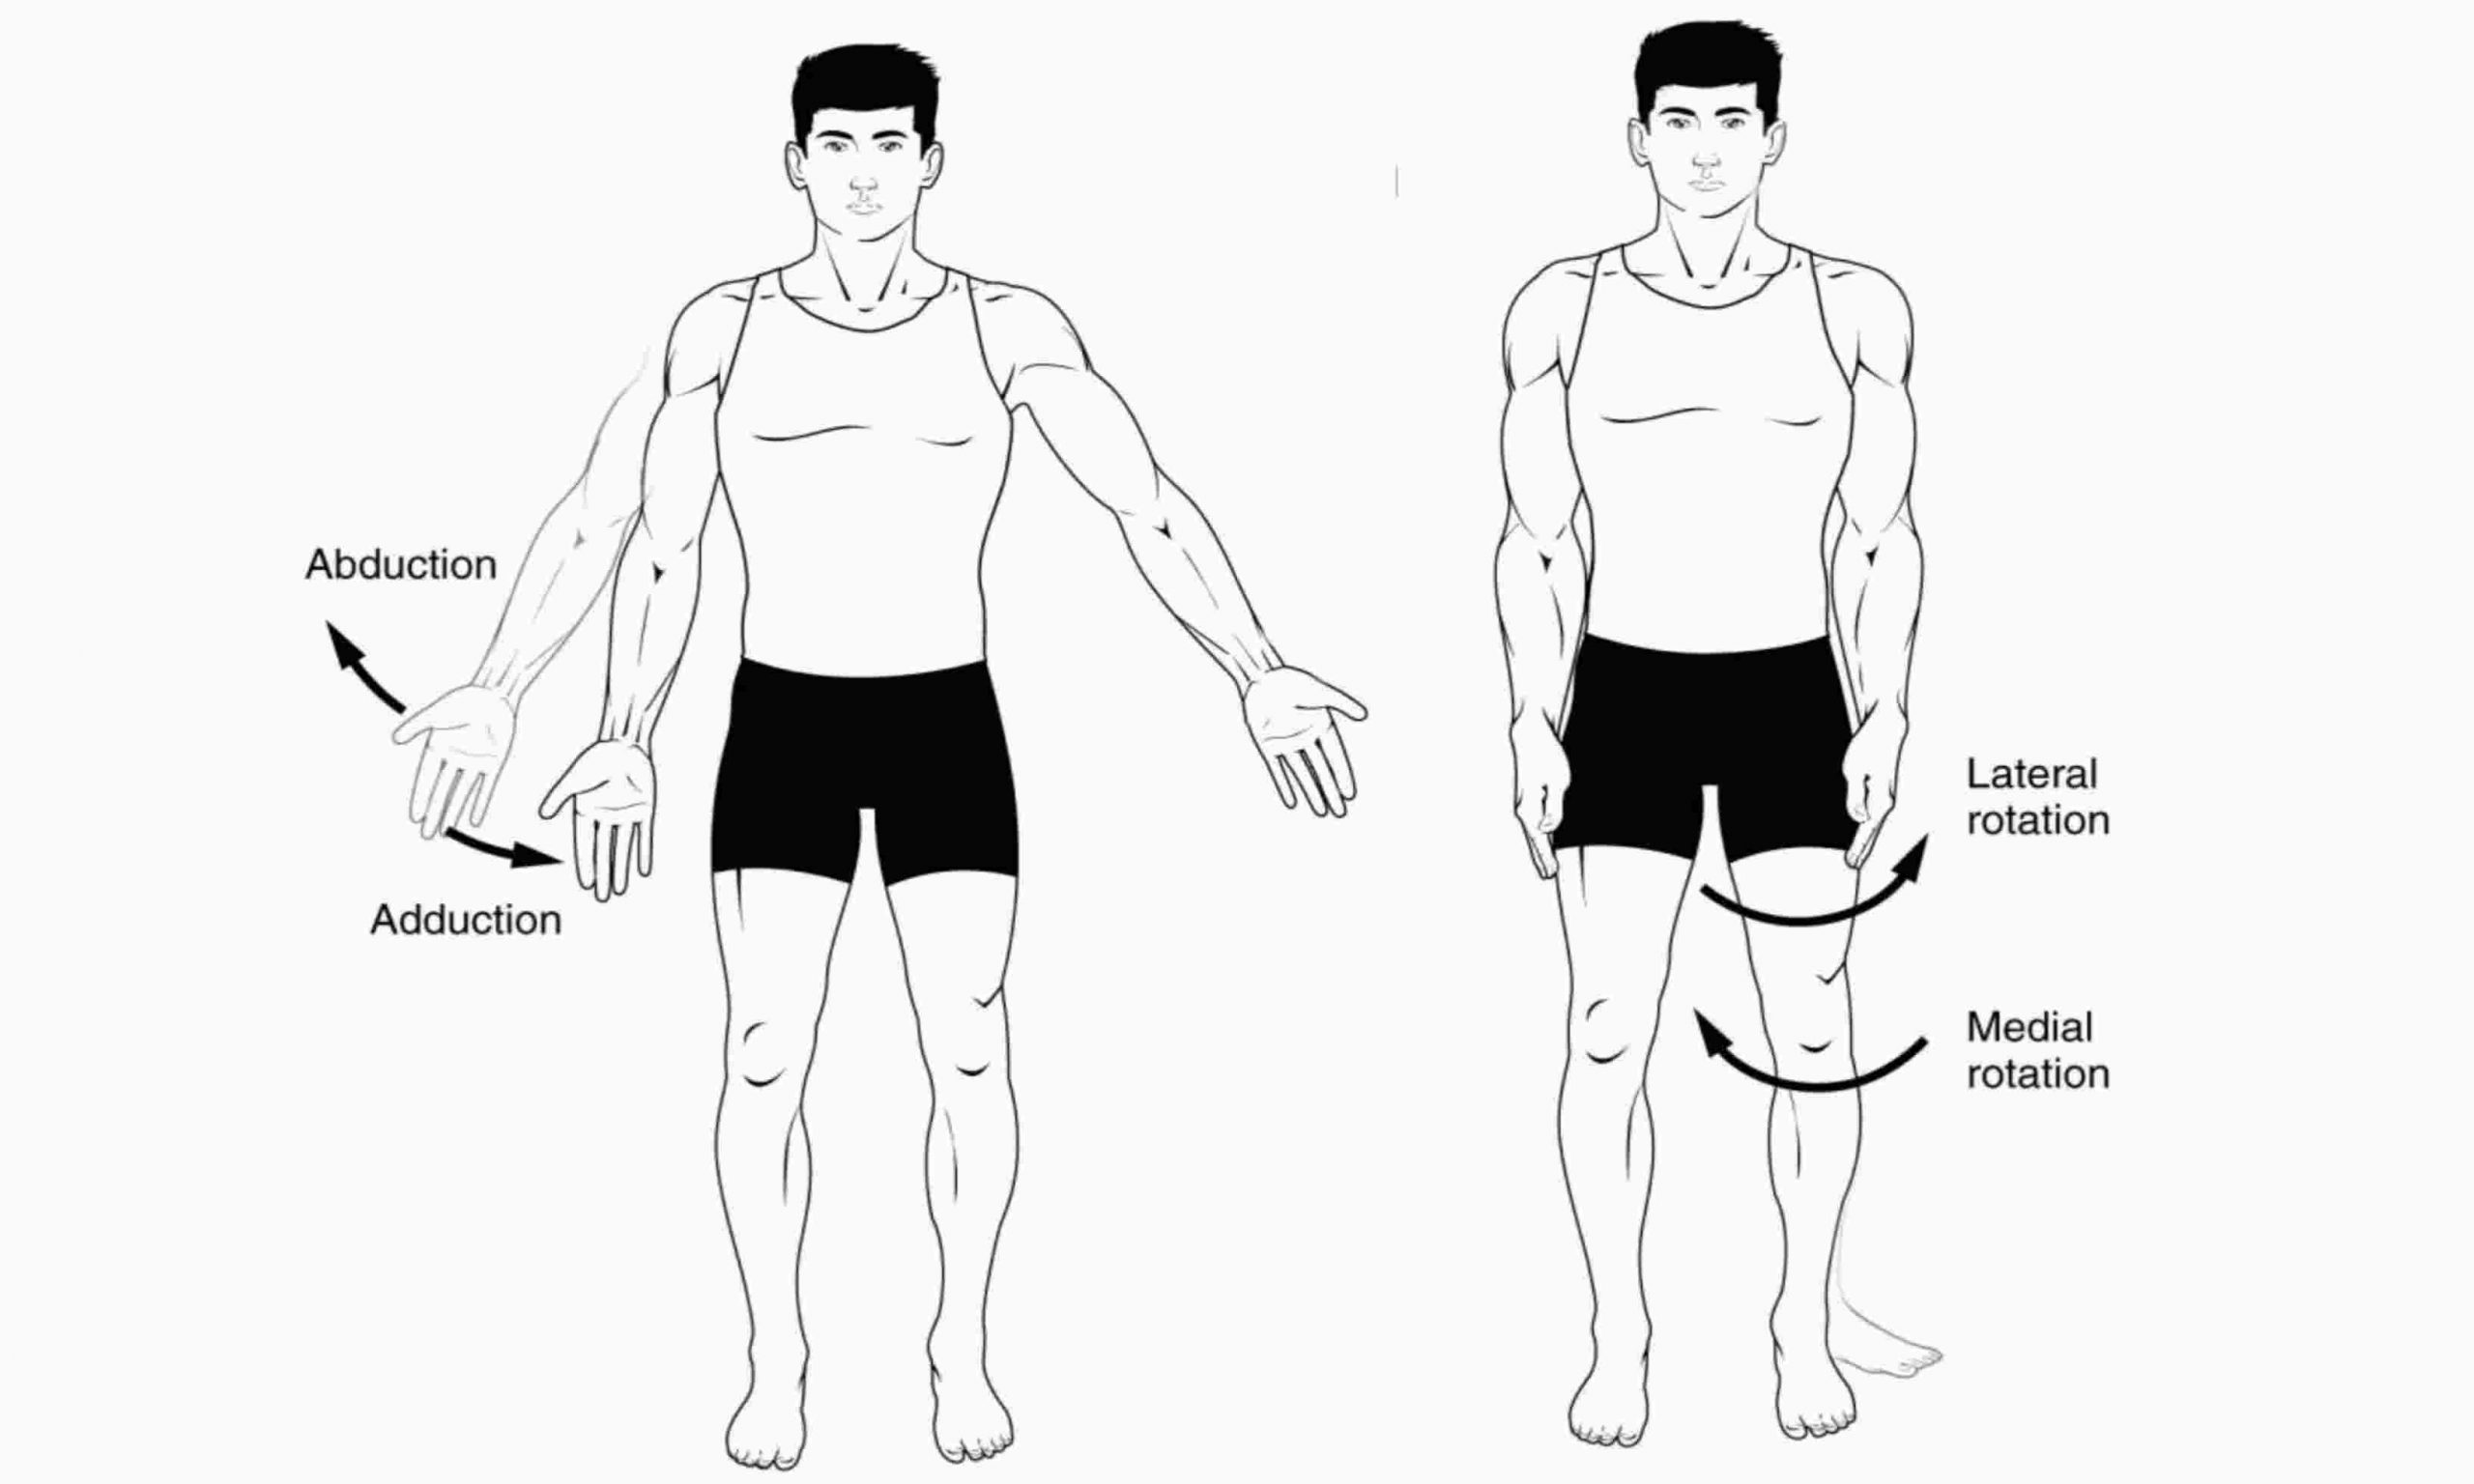 Difference between medial rotation and pronation